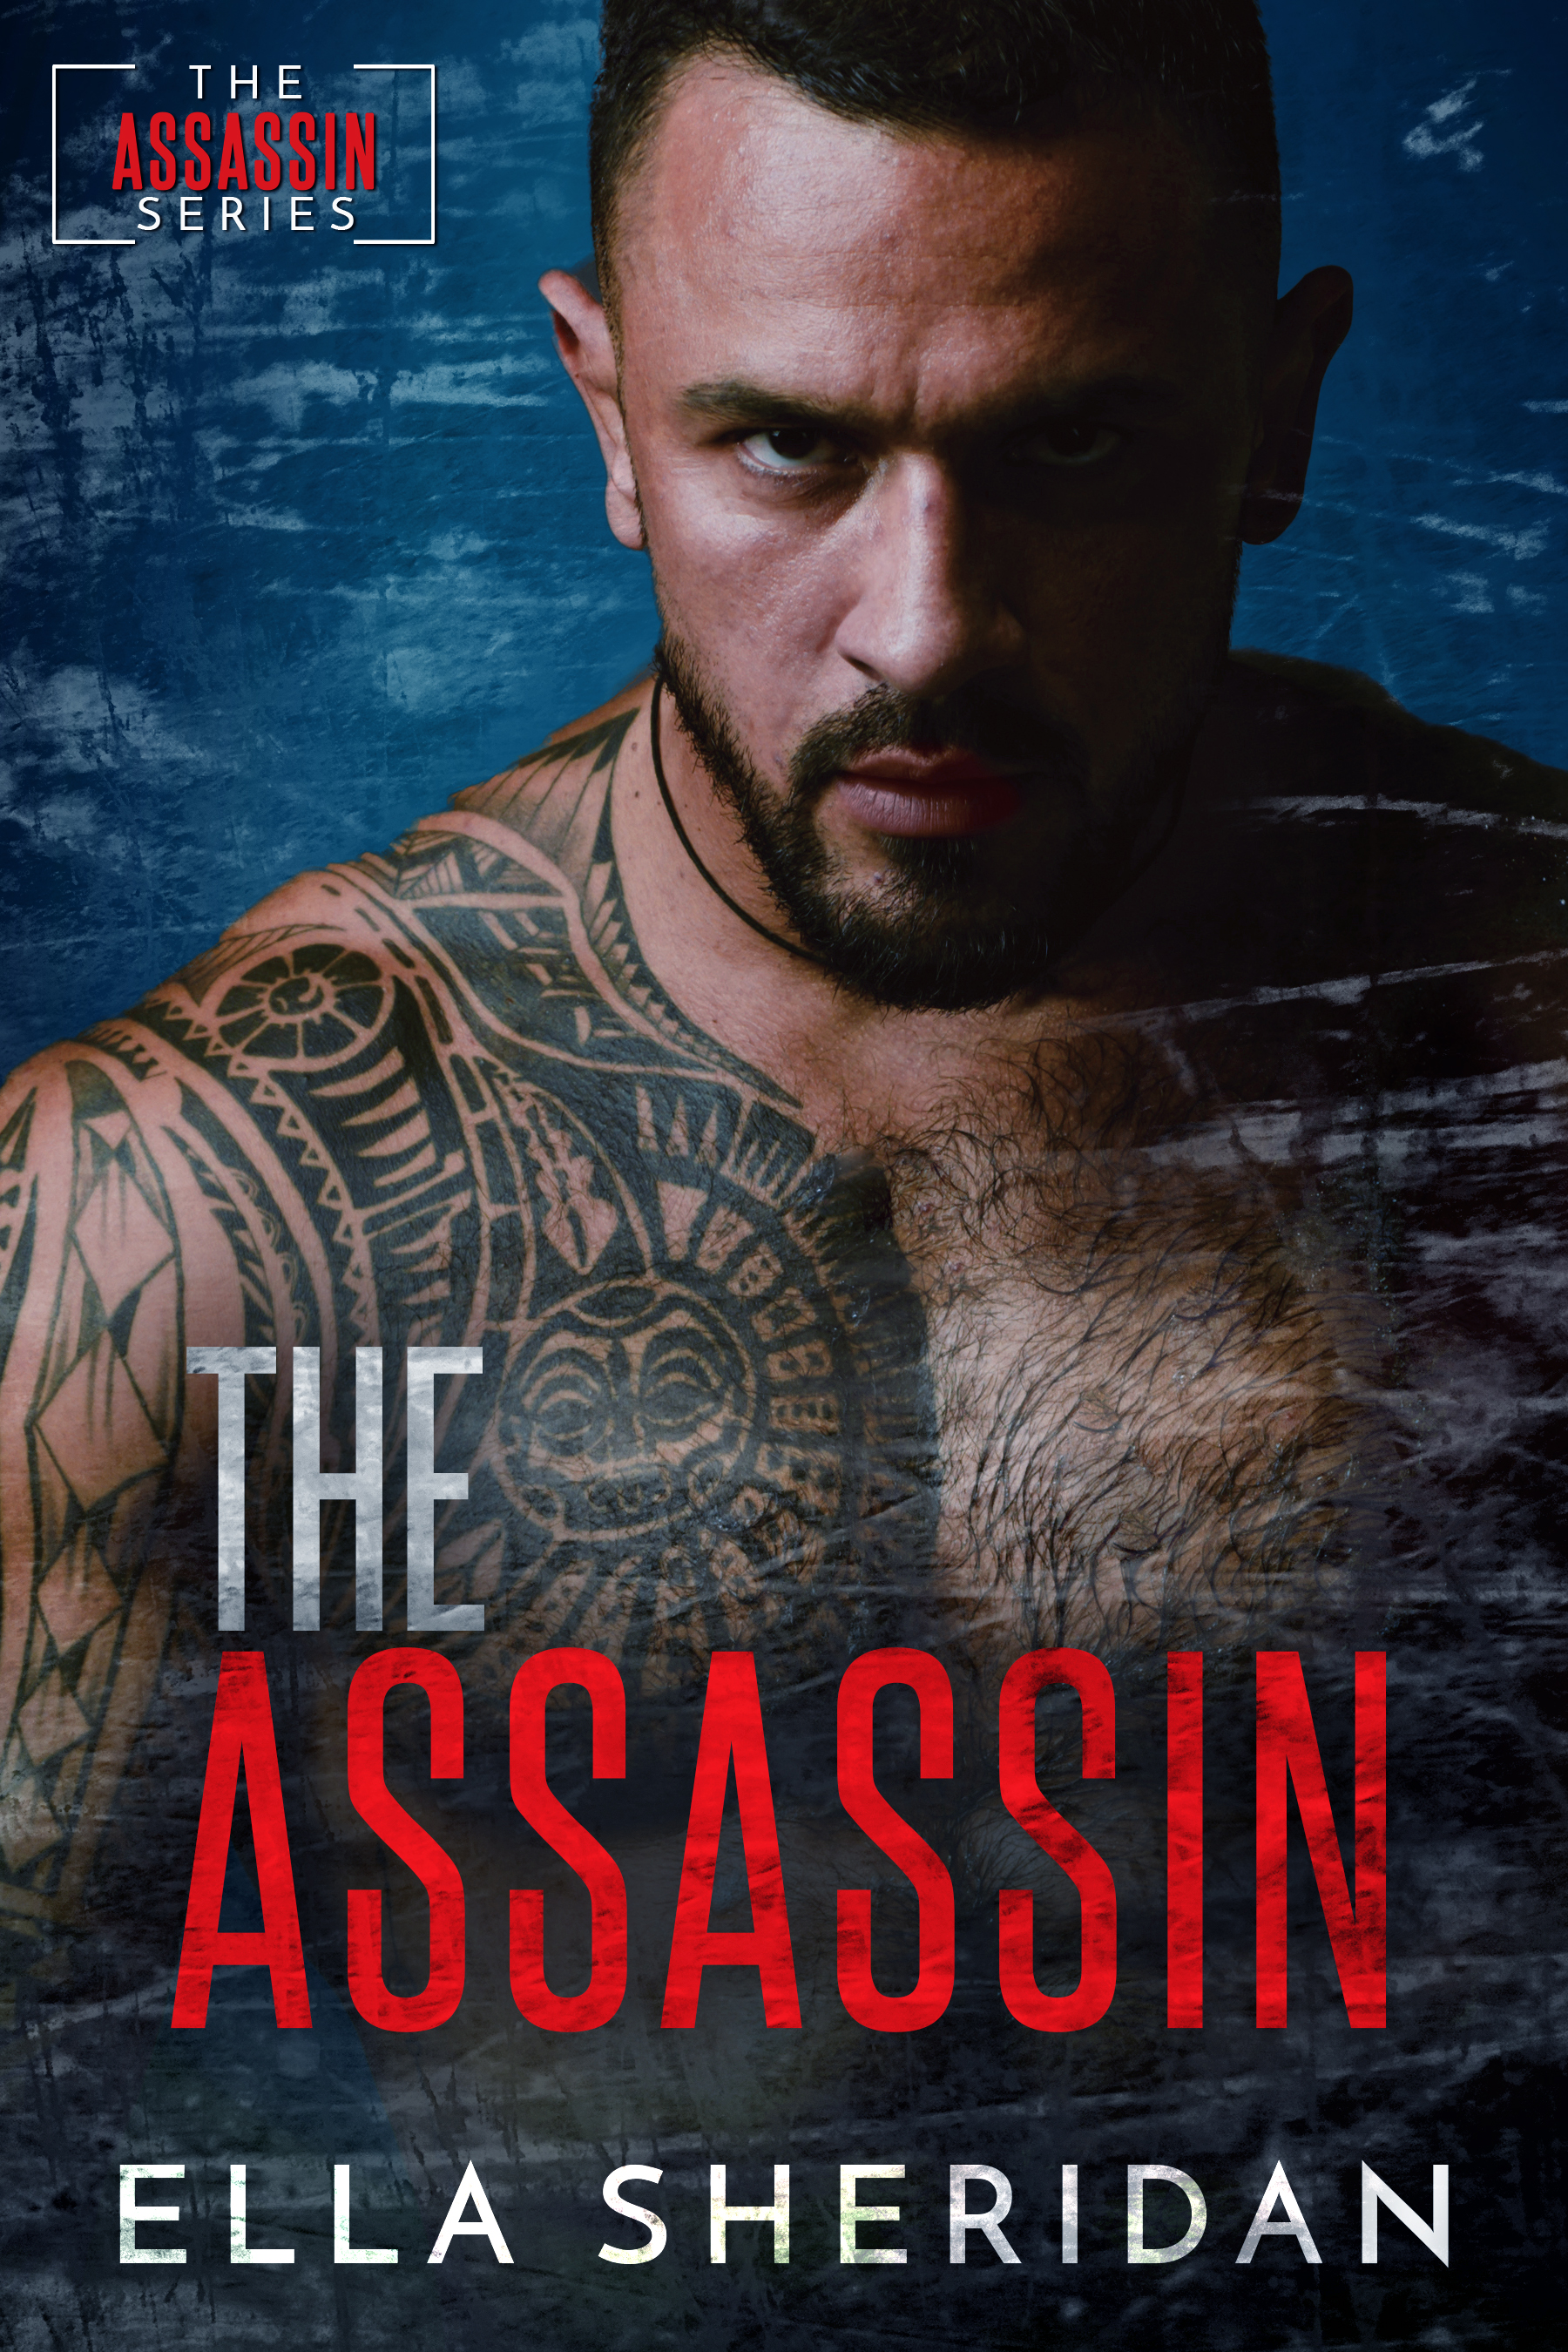 THE ASSASSIN_Cover.jpg